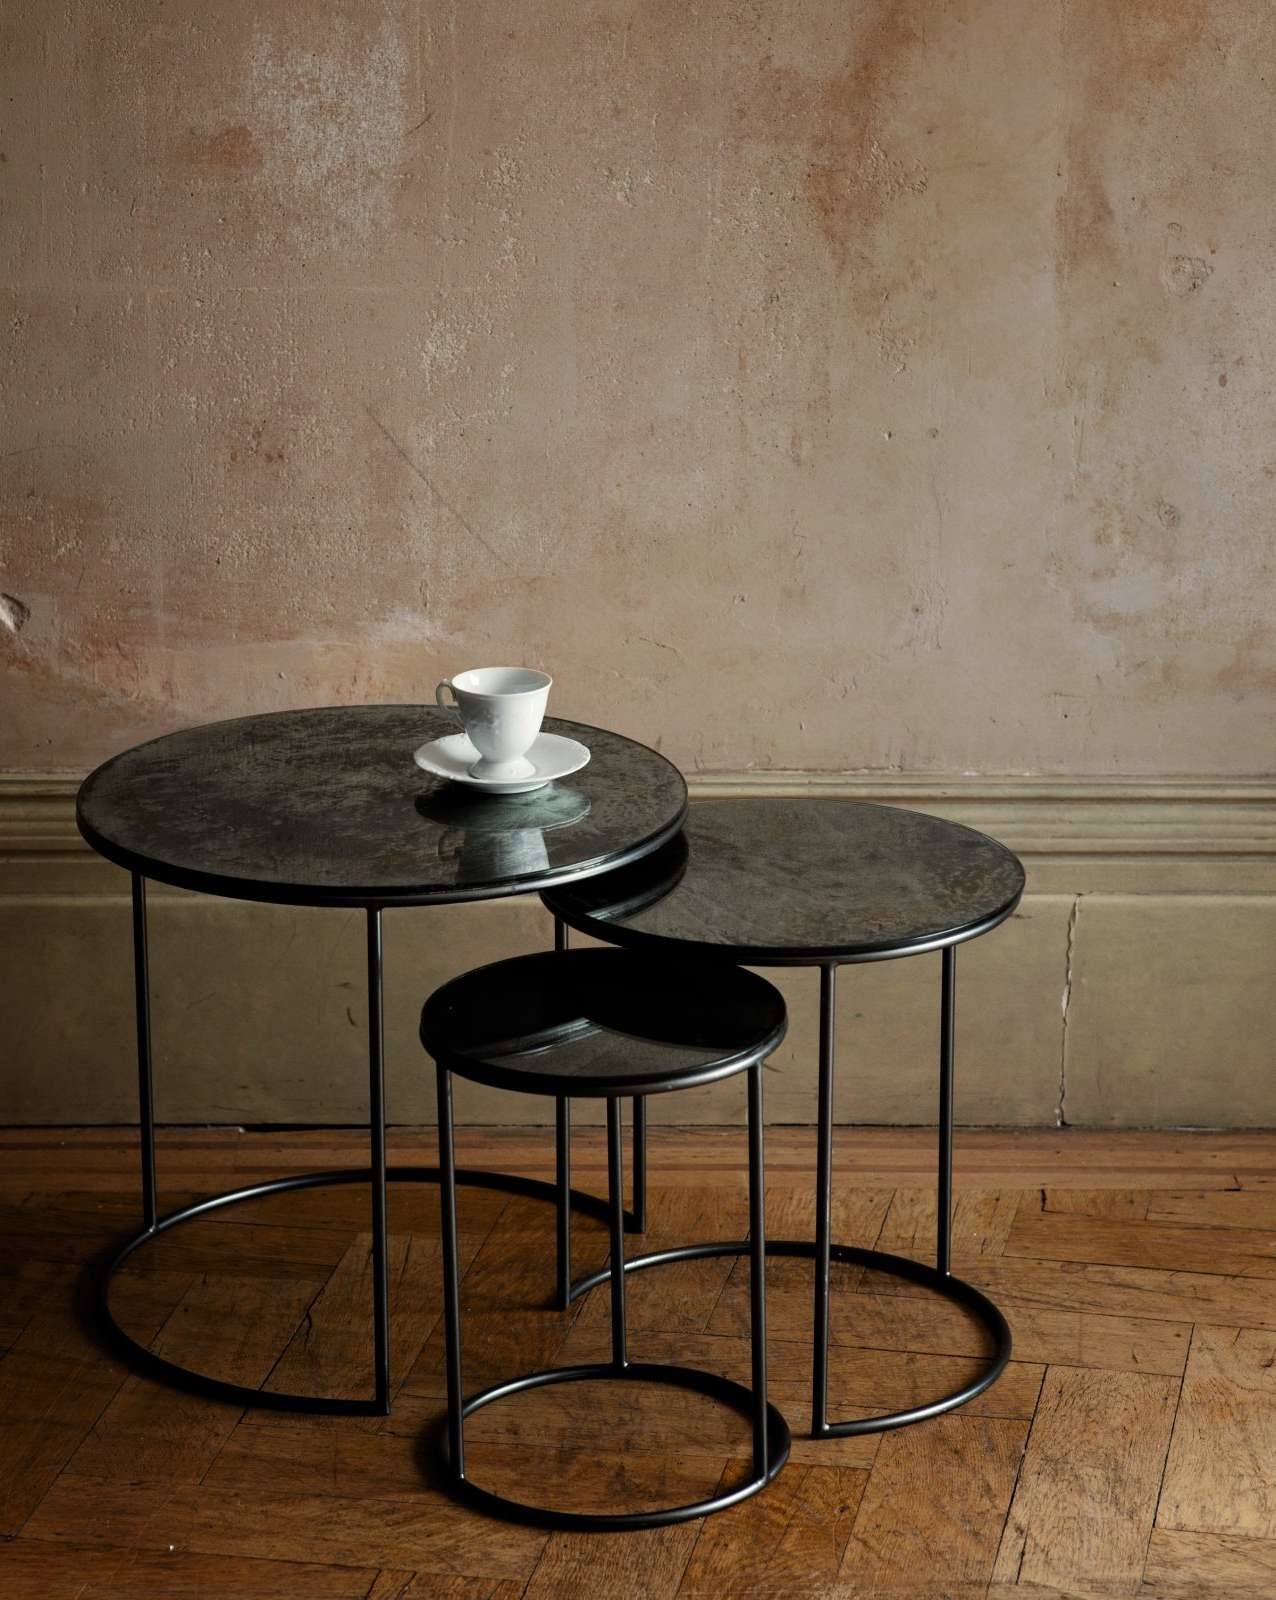 Well Known Mercury Glass Coffee Tables Intended For Ochre – Contemporary Furniture, Lighting And Accessory Design (View 6 of 20)